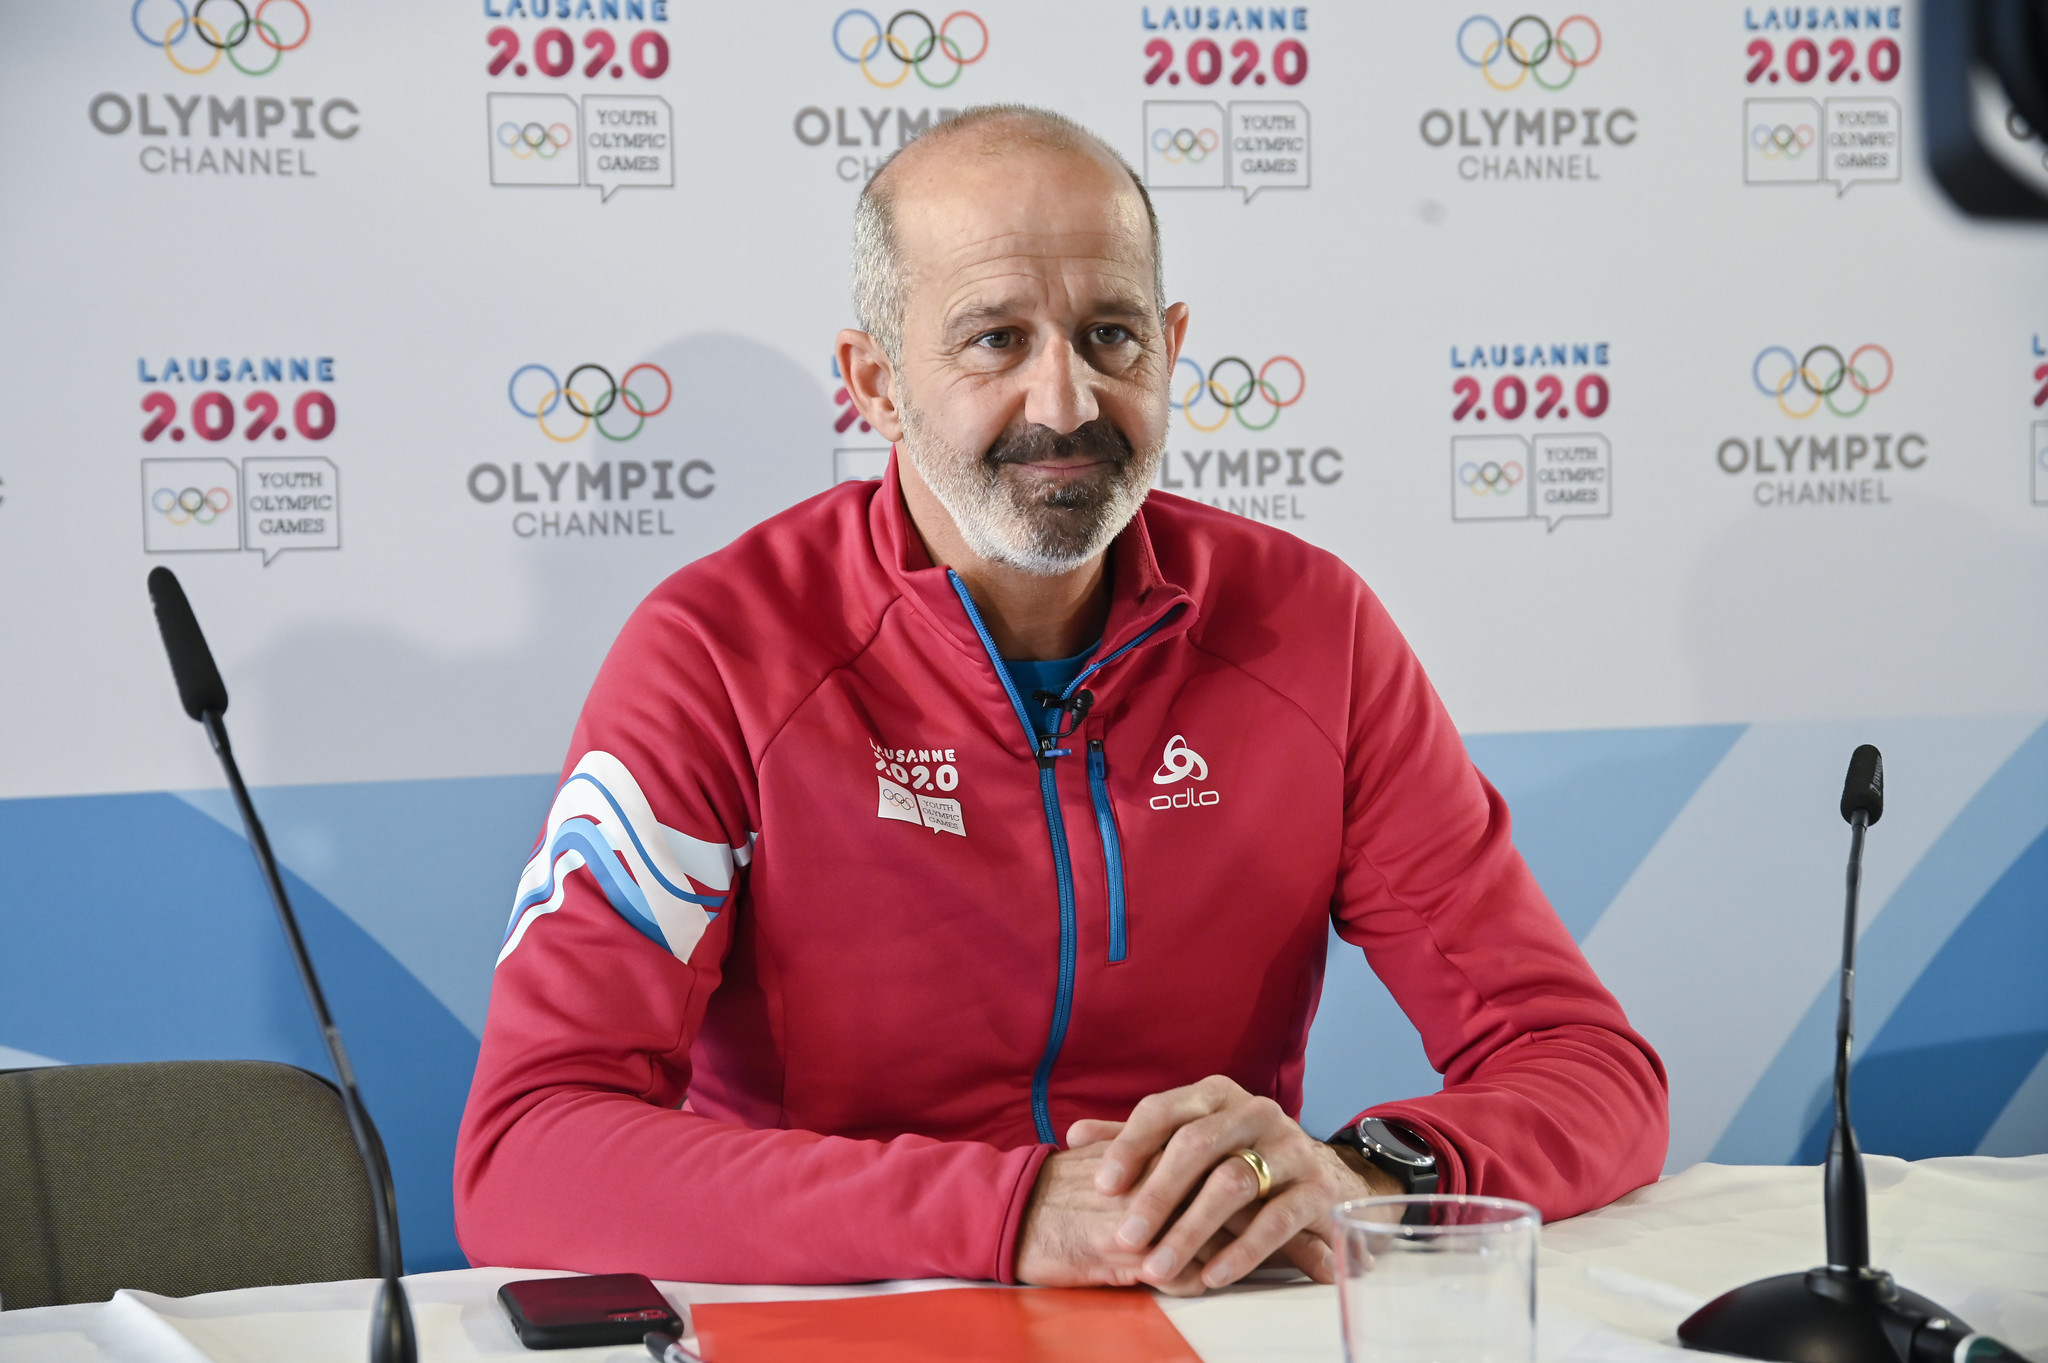 Lausanne 2020 chief executive Ian Logan claimed the Games had been a